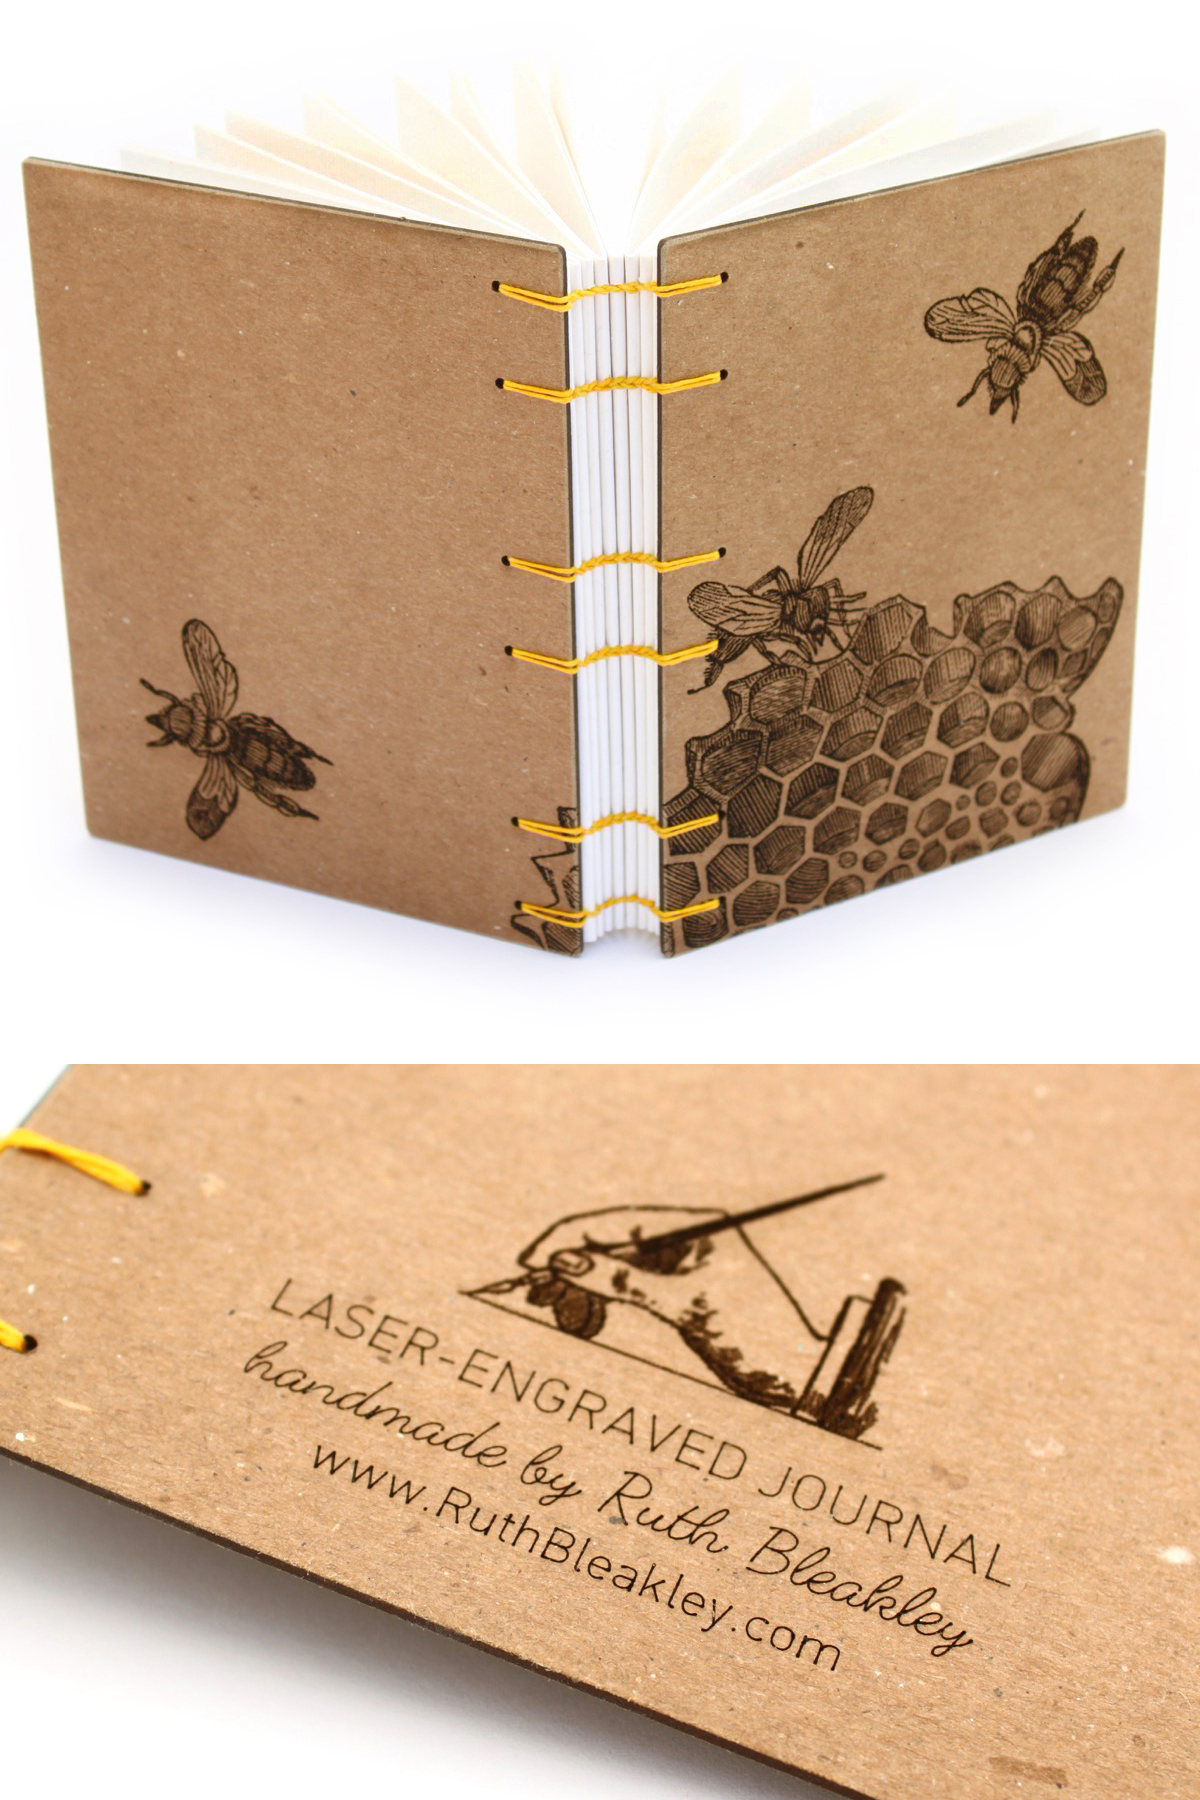 Honeybee Journal with laser engraved cover